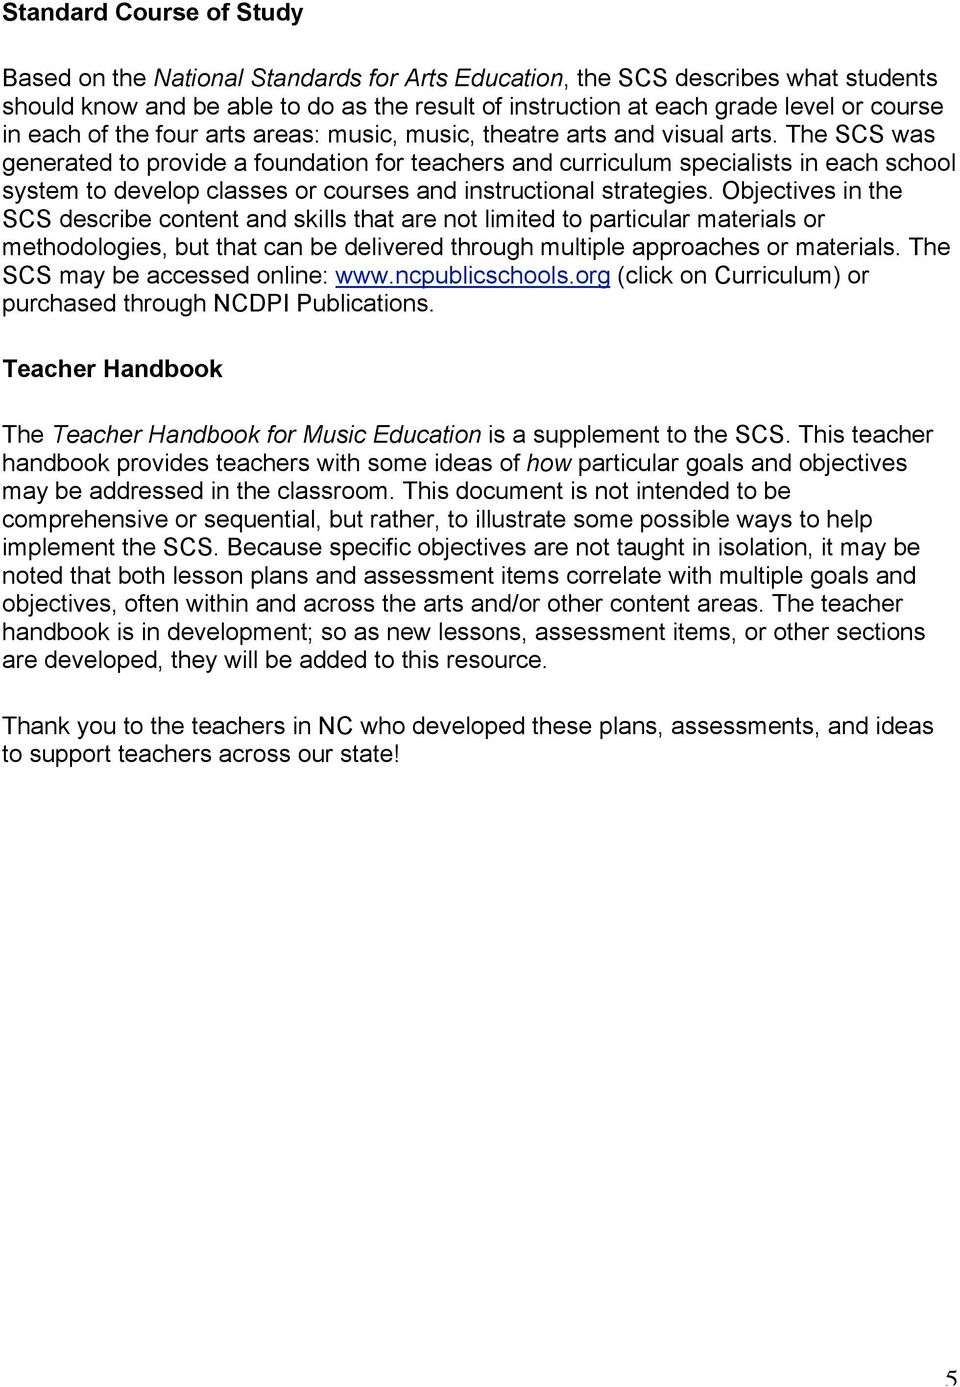 The SCS was generated to provide a foundation for teachers and curriculum specialists in each school system to develop classes or courses and instructional strategies.